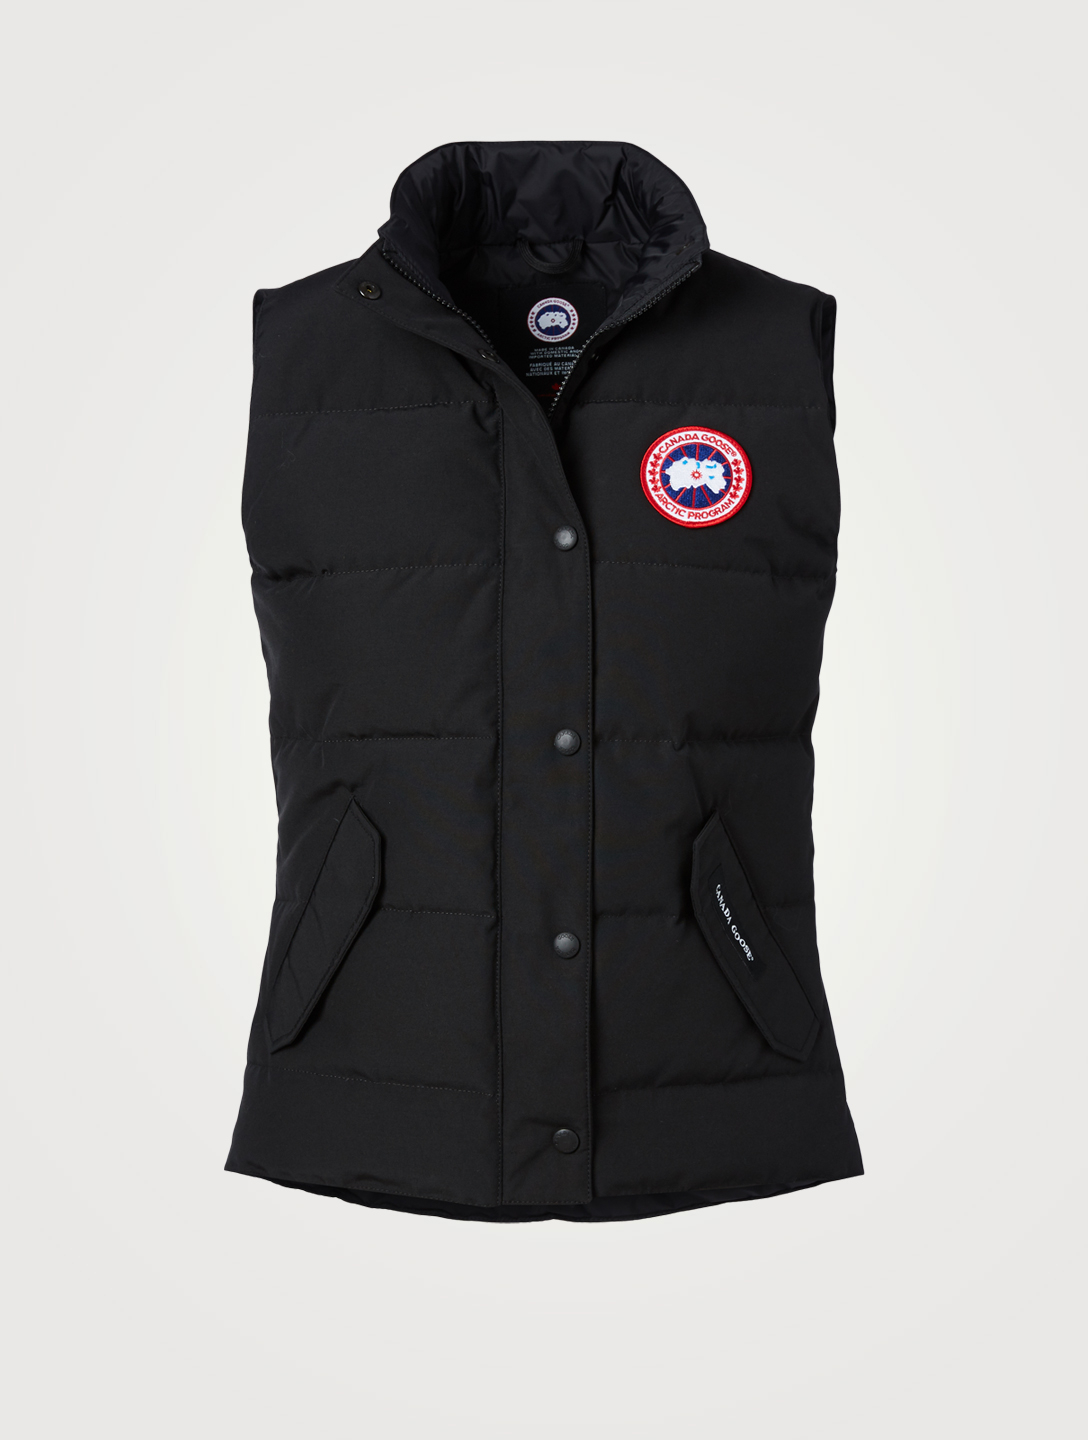 CANADA GOOSE Freestyle Down Puffer Vest Women's Black